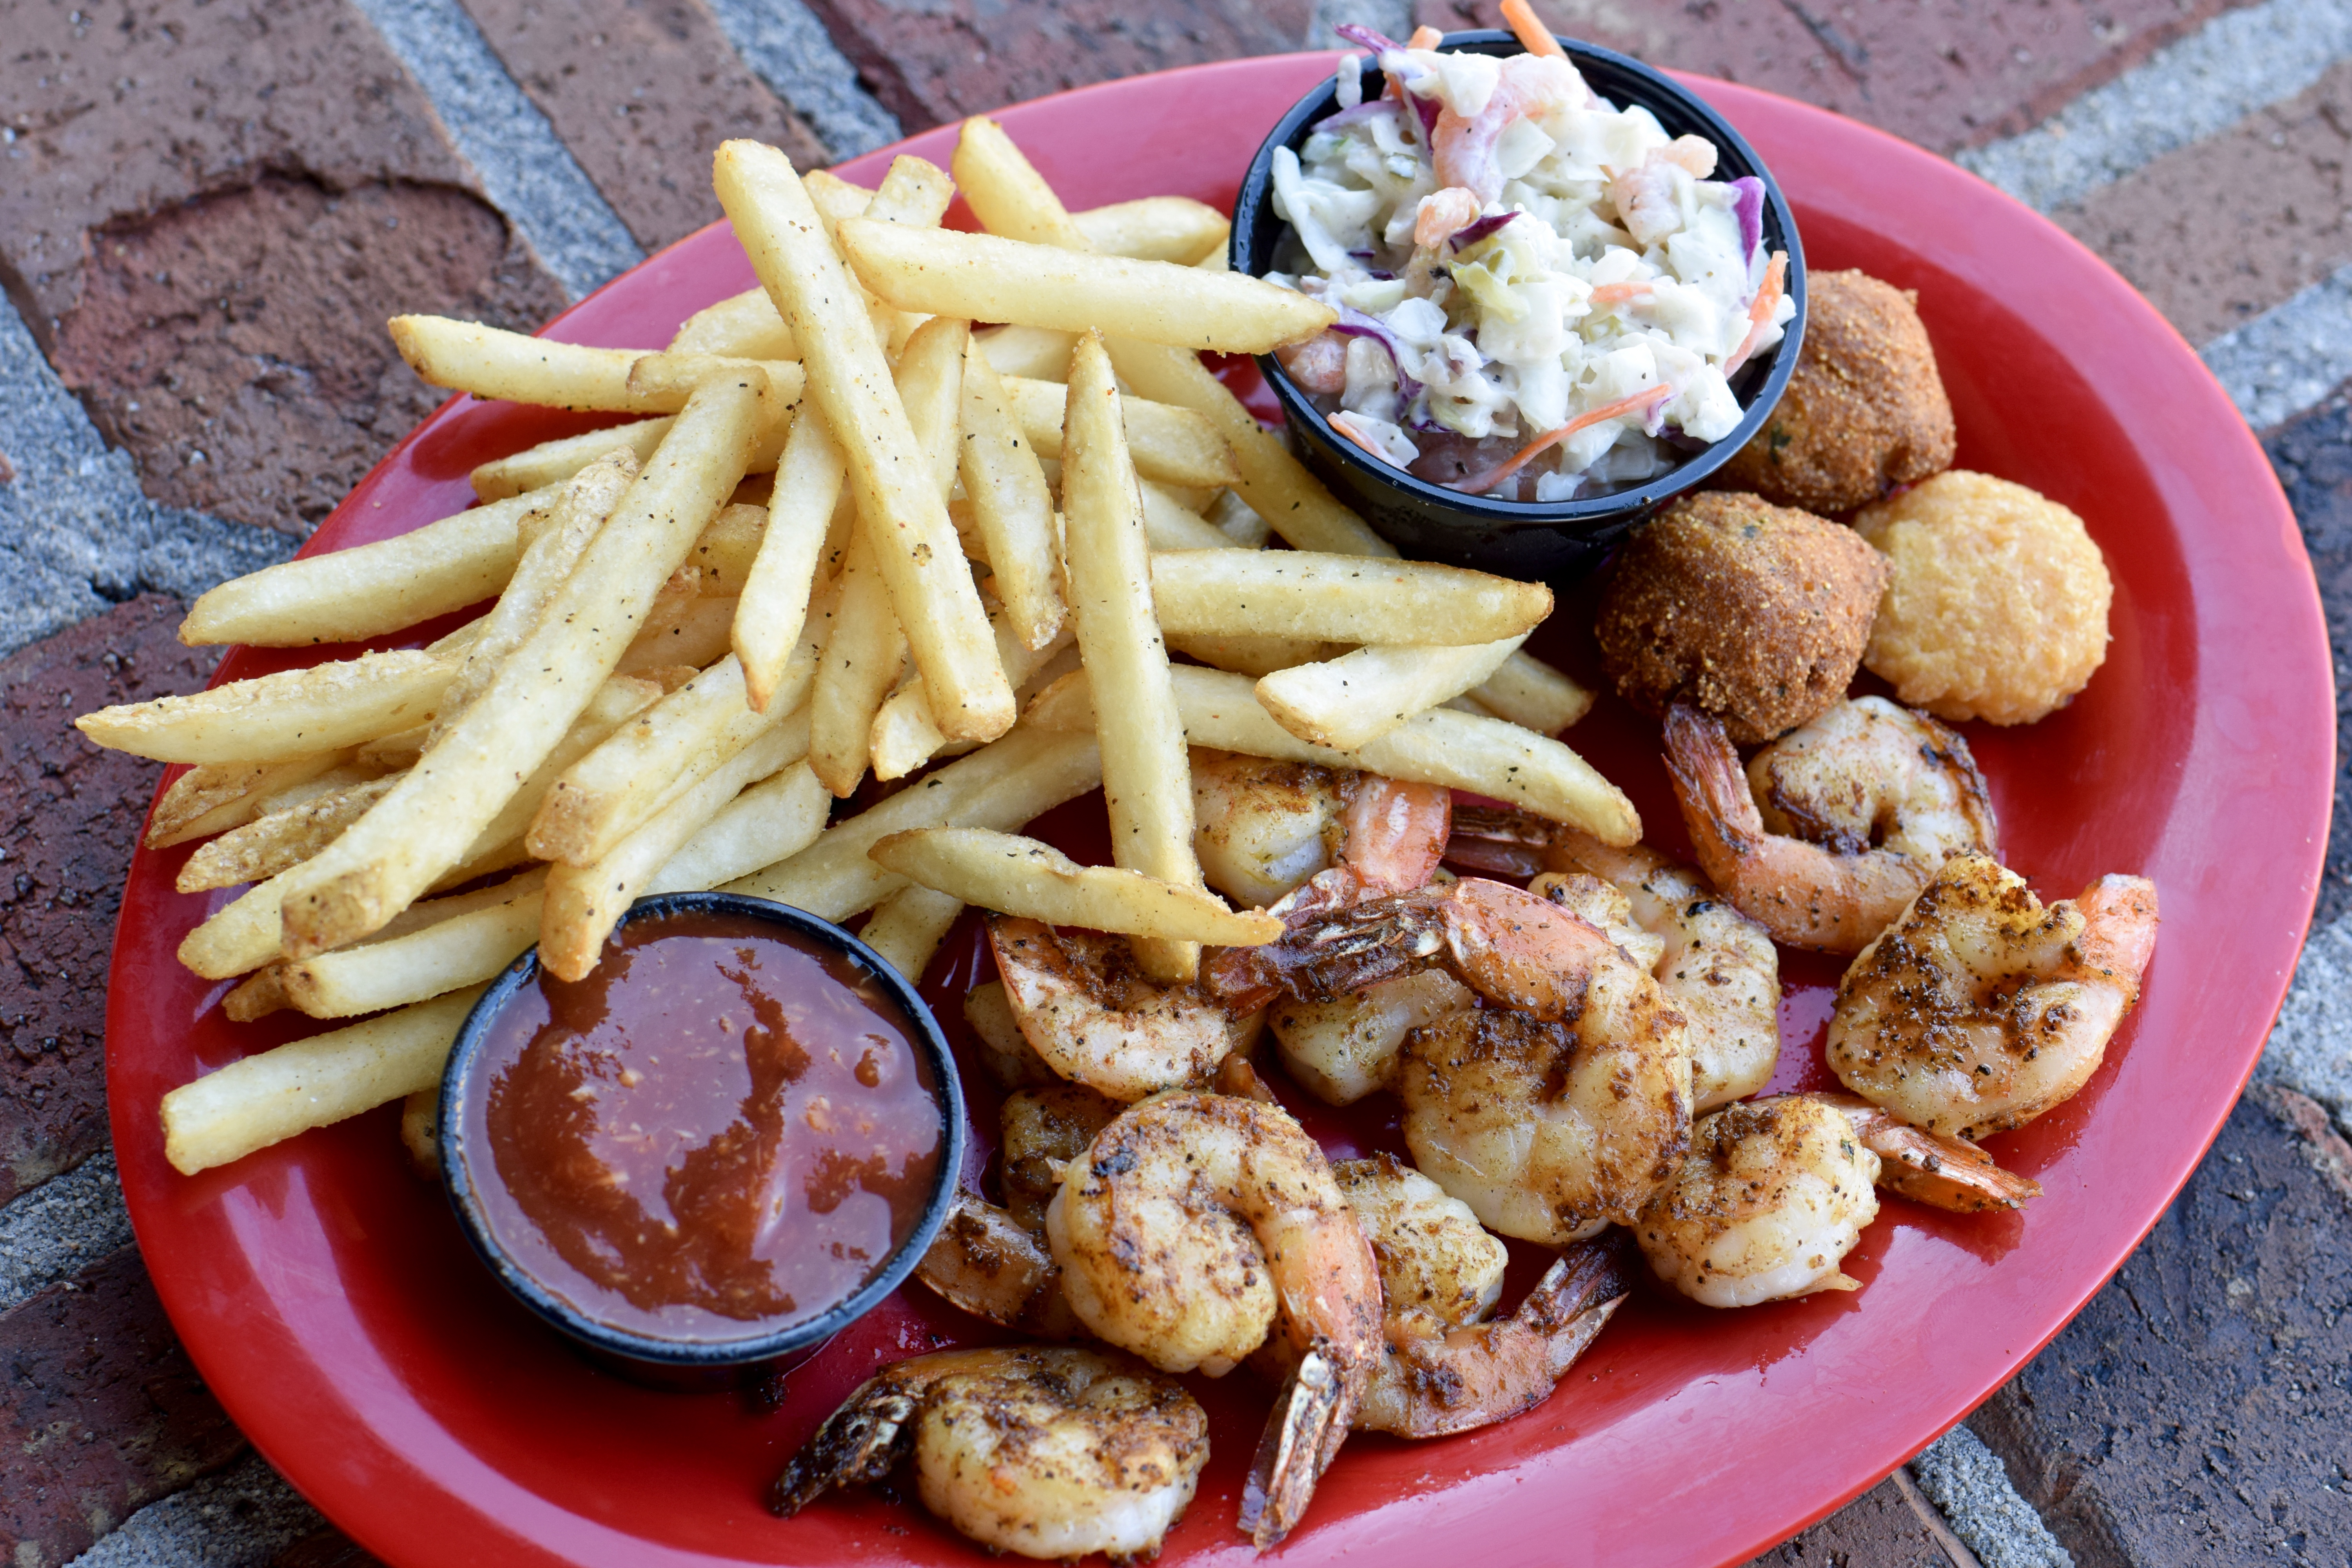 Grilled shrimp platter with cocktail sauce and a side of fries & hush puppies